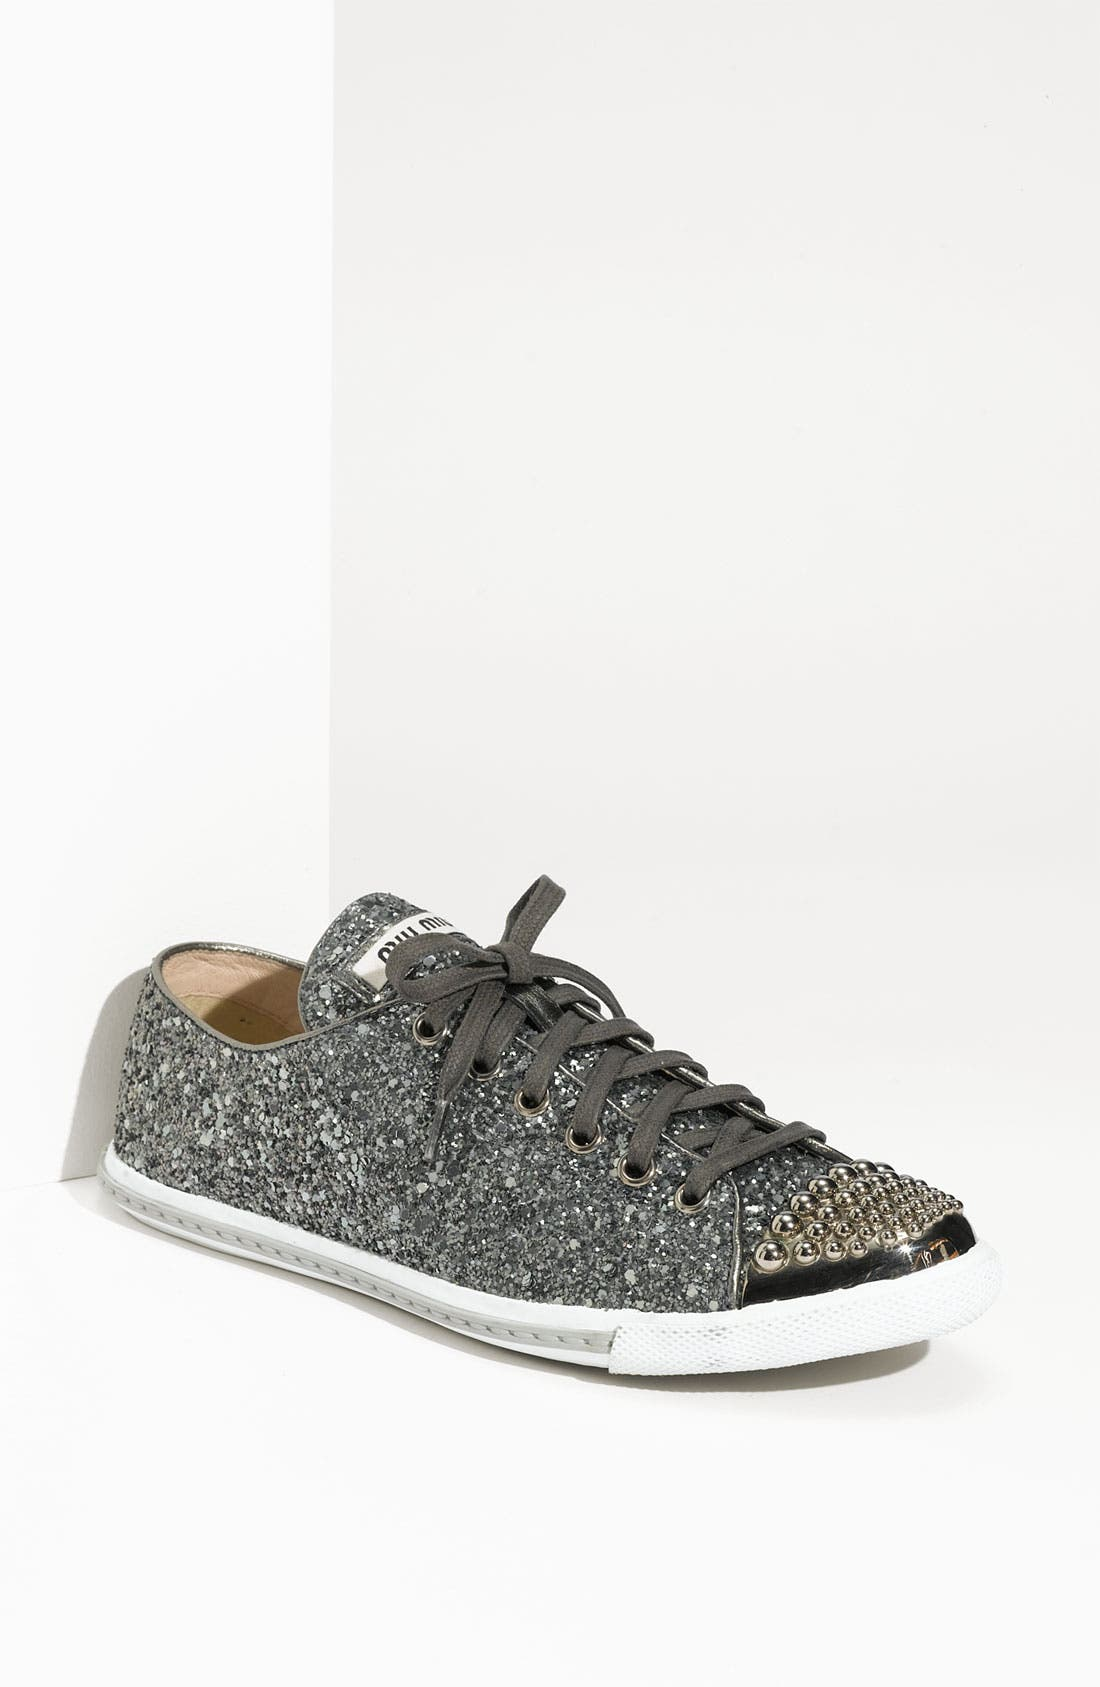 Alternate Image 1 Selected - Miu Miu Glitter Sneaker